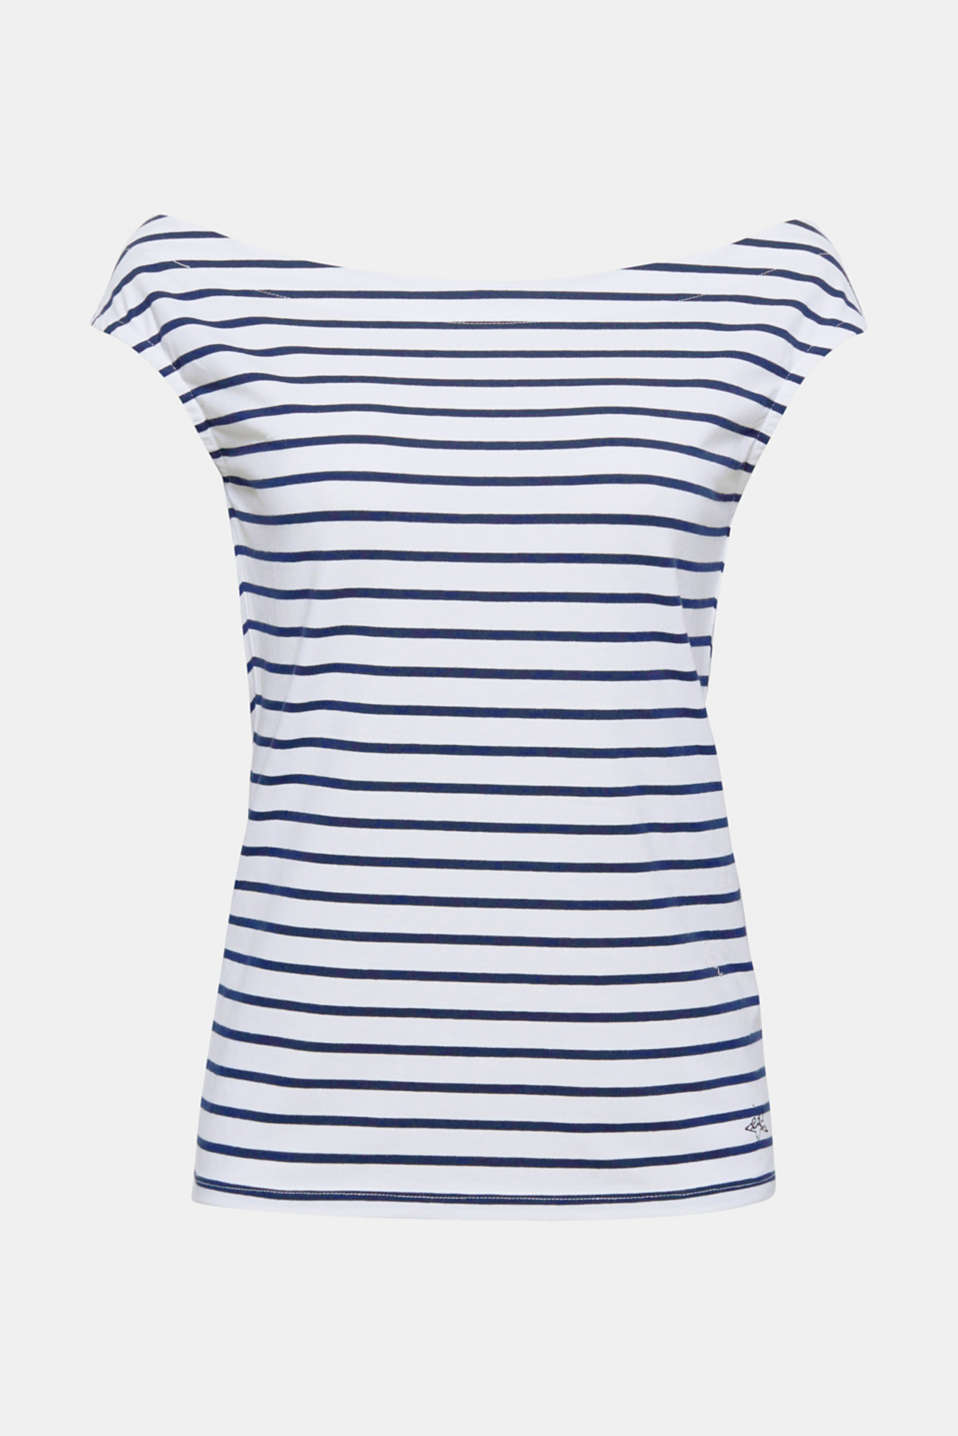 Feminine, stylish and summer-ready, this striped cotton Carmen top with stretch for comfort is the perfect everyday favourite